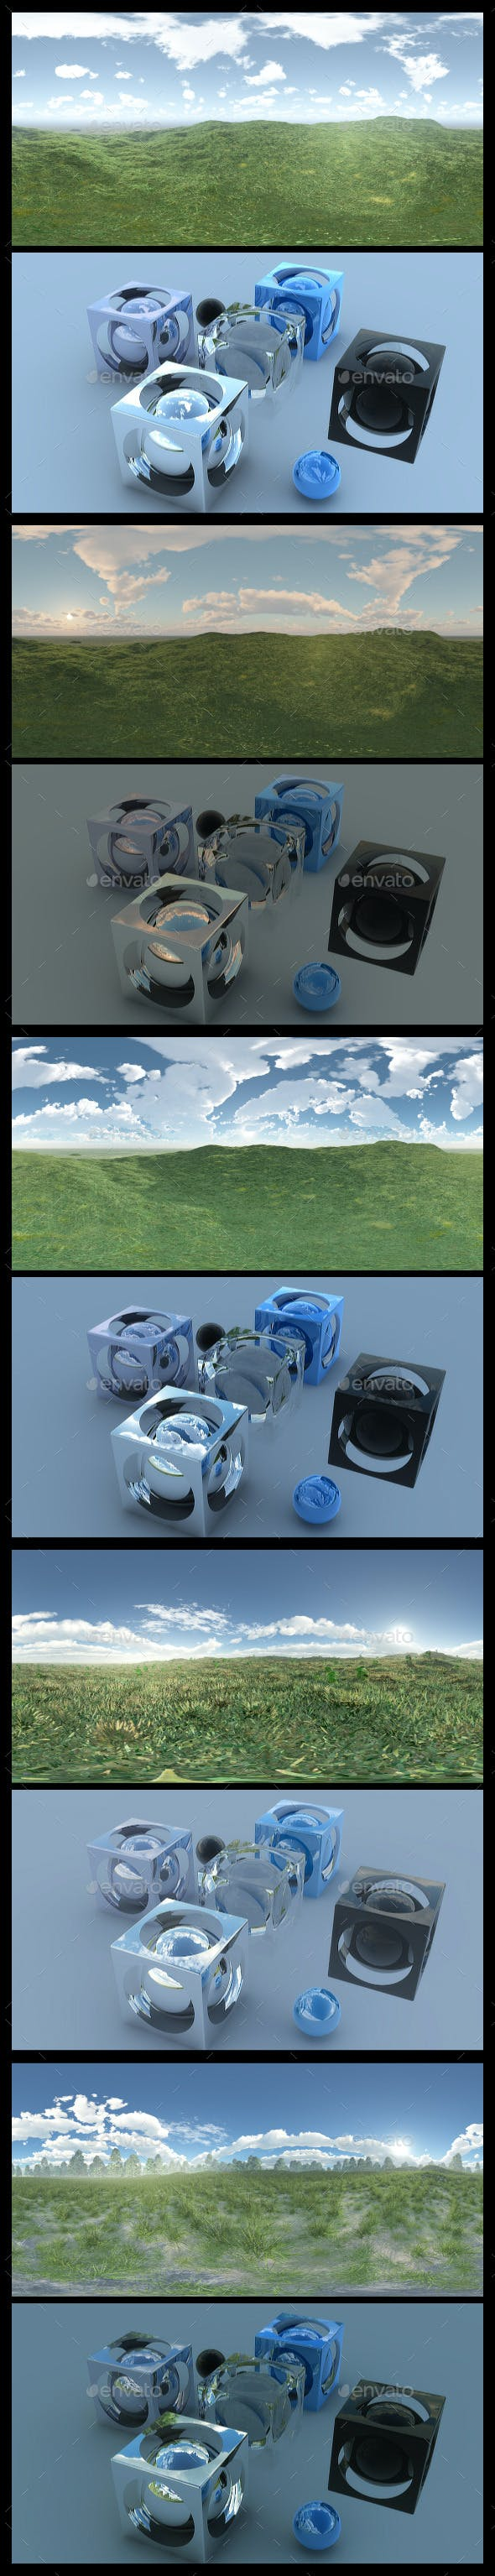 Grass Field - HDRI Pack - 3DOcean Item for Sale